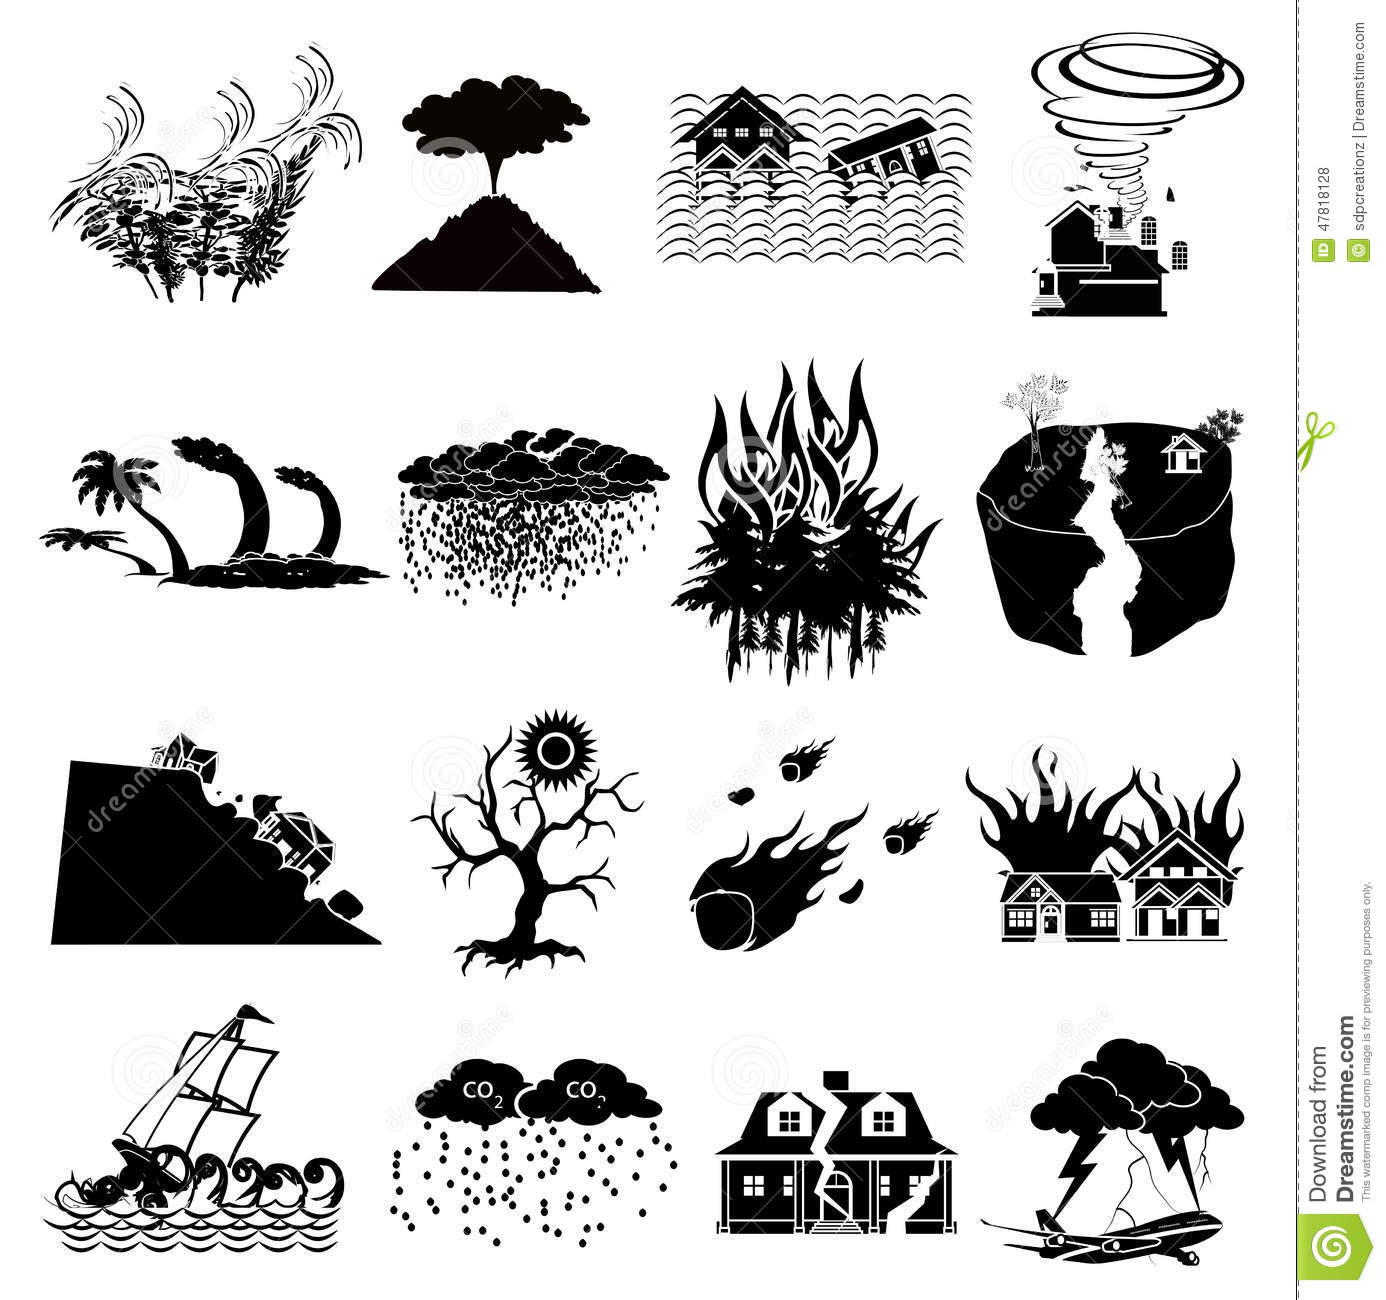 Stock Photography Grocery Icons Related Silhouettes Image33530892 additionally Our School together with Herbal Laundry Detergent Recipe likewise Premium moreover Top 10 Fox Black White Logo Vector Image. on natural resources clip art